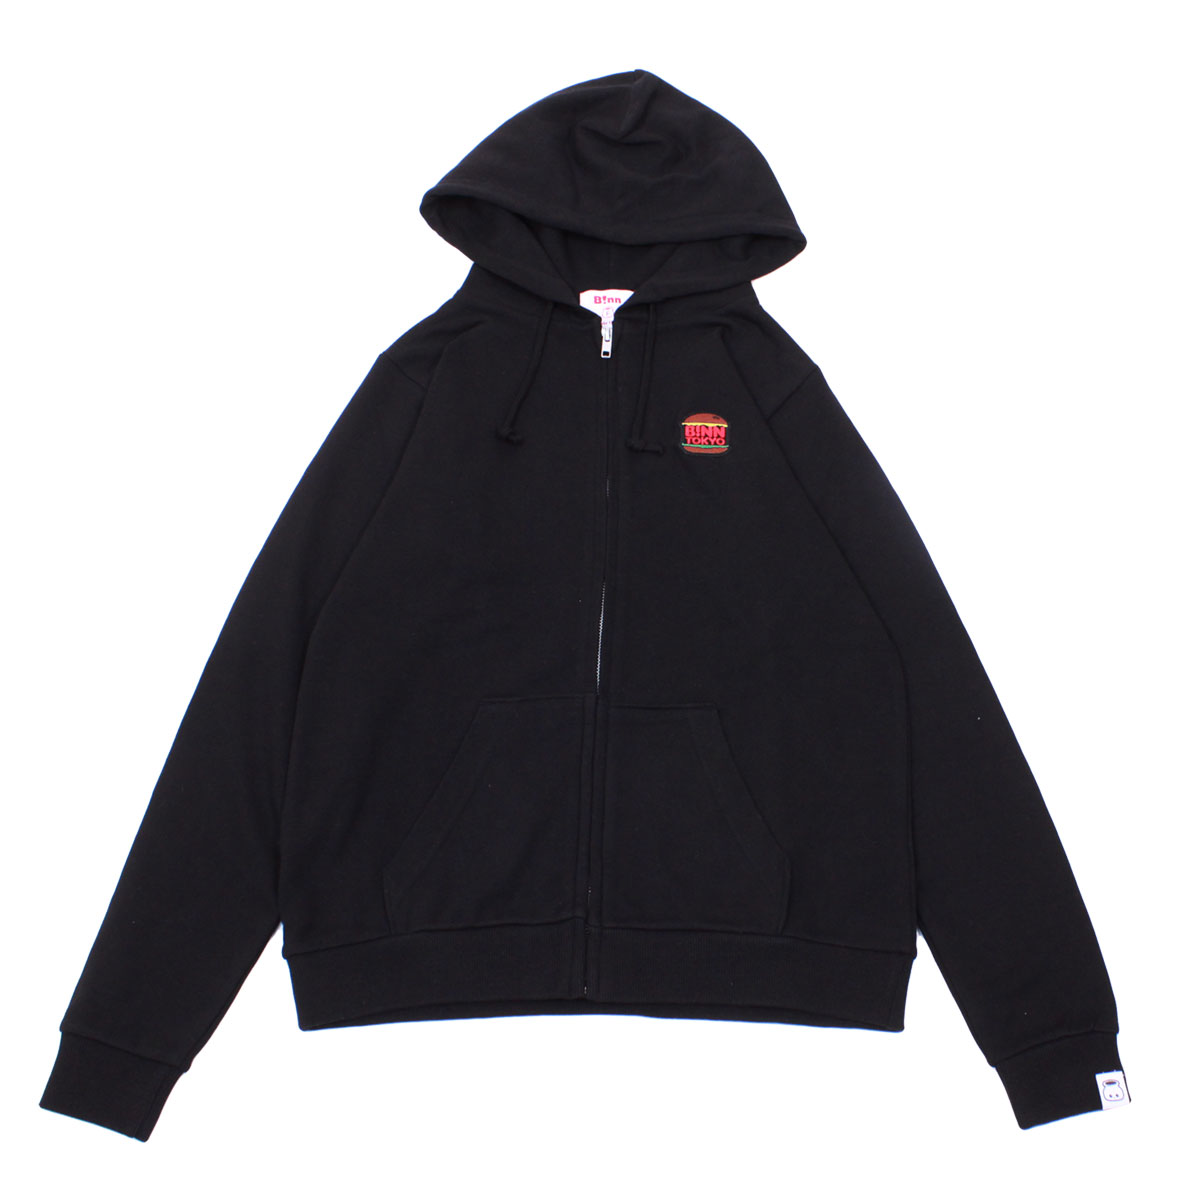 Burger Full Zip Hoodie (Black)